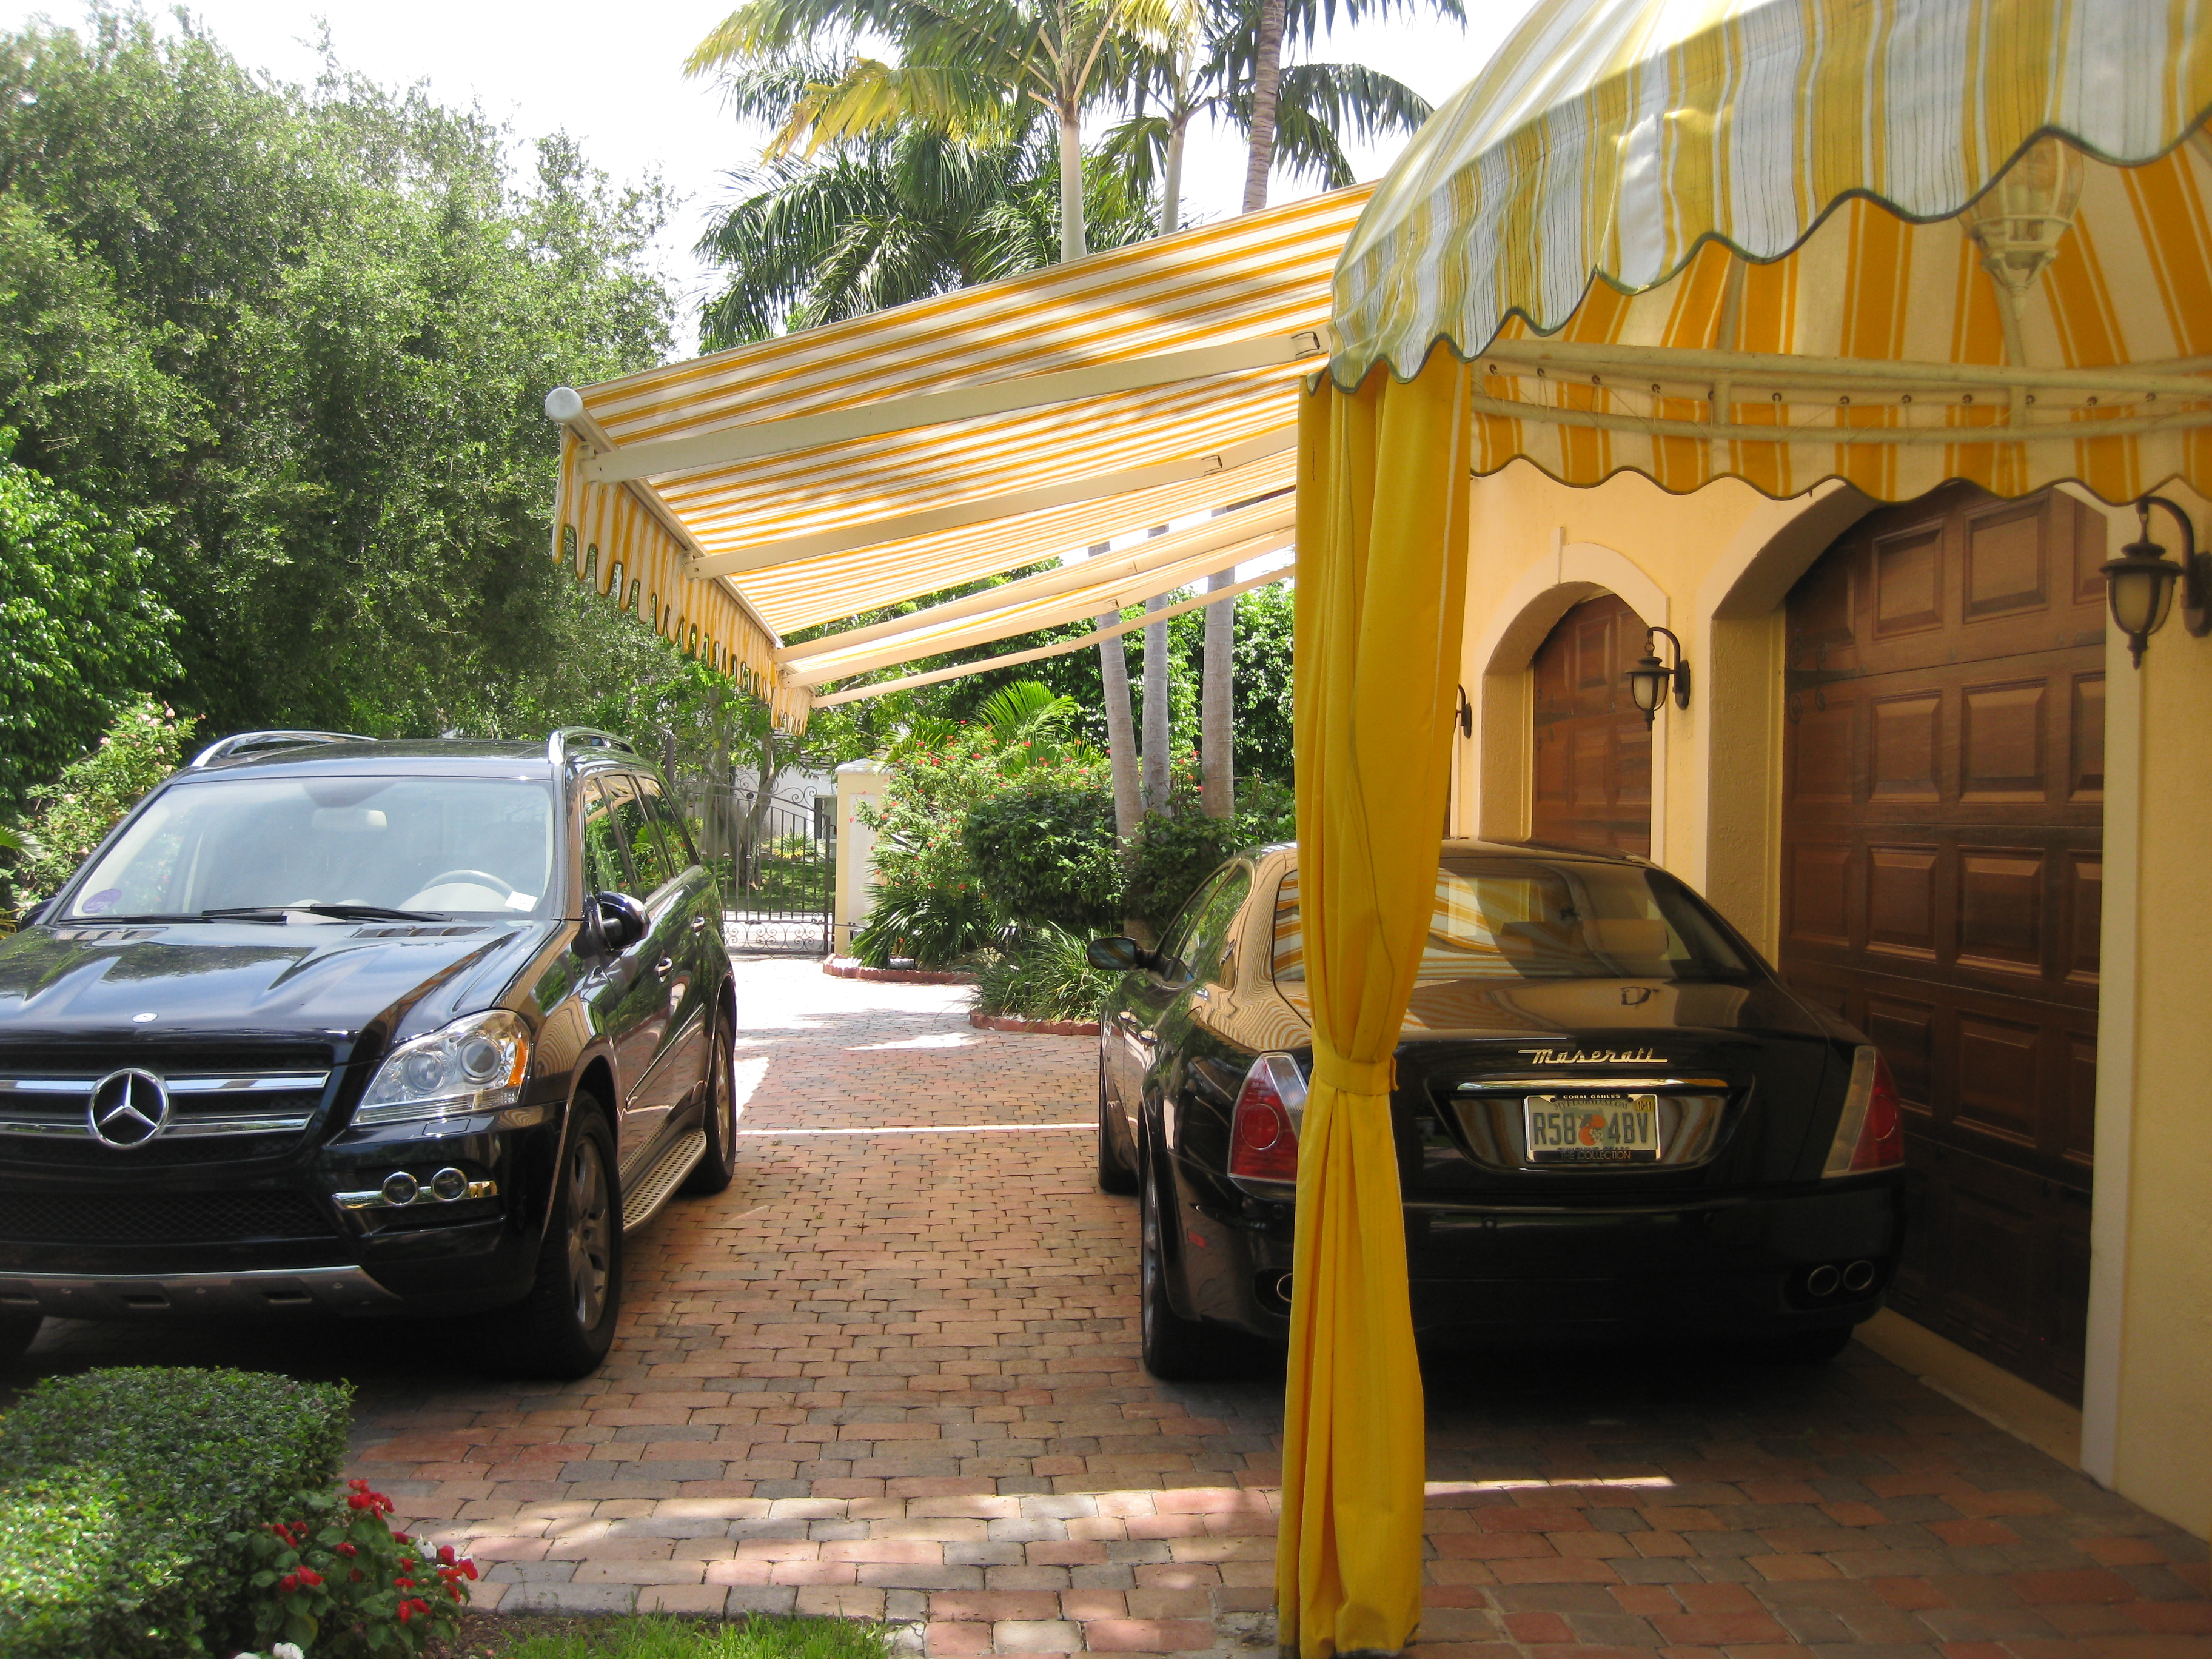 American Awning Services Corp 10890 Quail Roost Dr #27 Miami, FL Tents  Retail   MapQuest